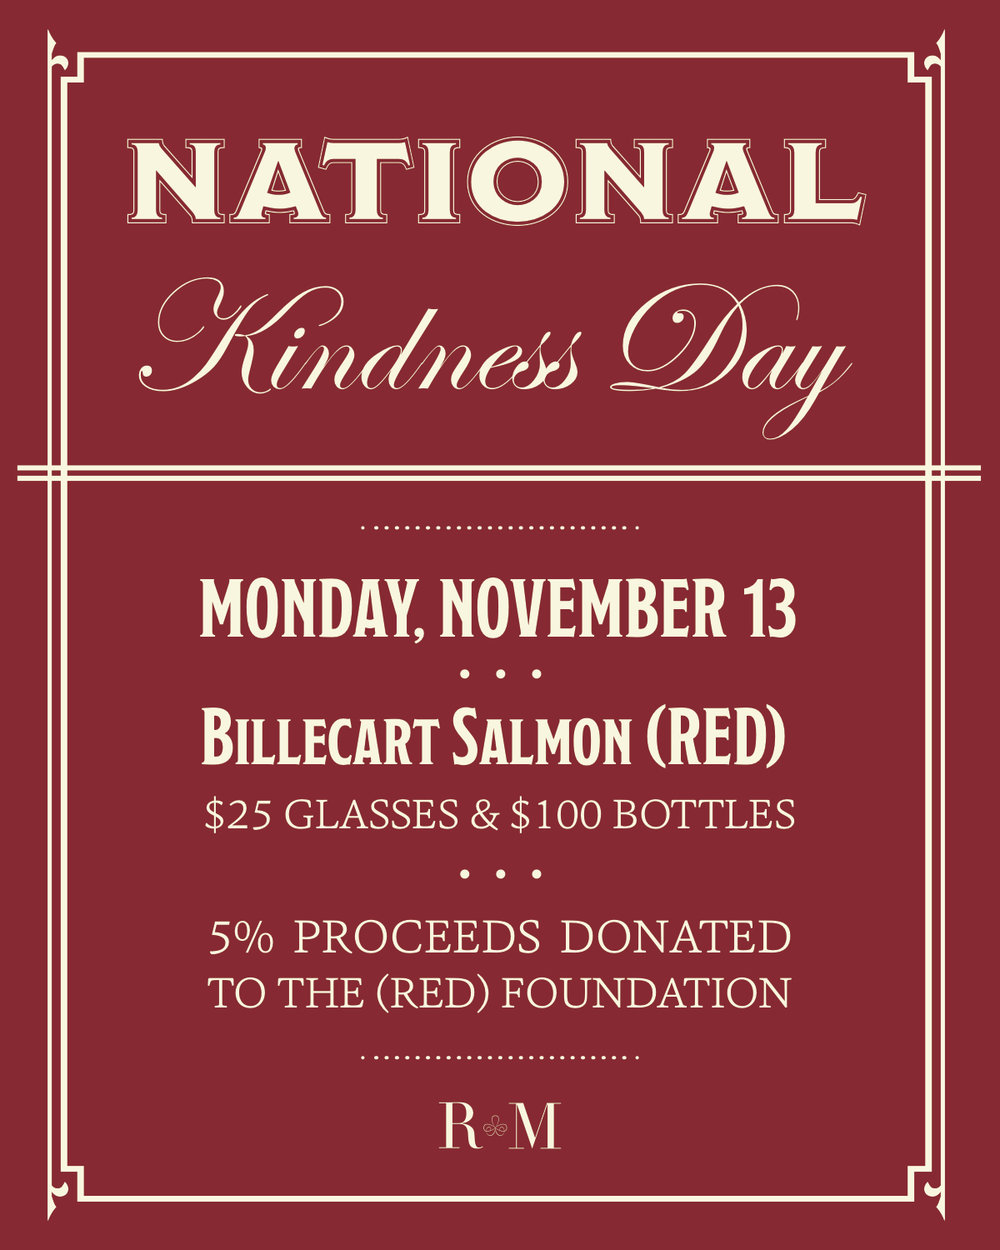 RM_NationalKindnessDay_11617.jpg